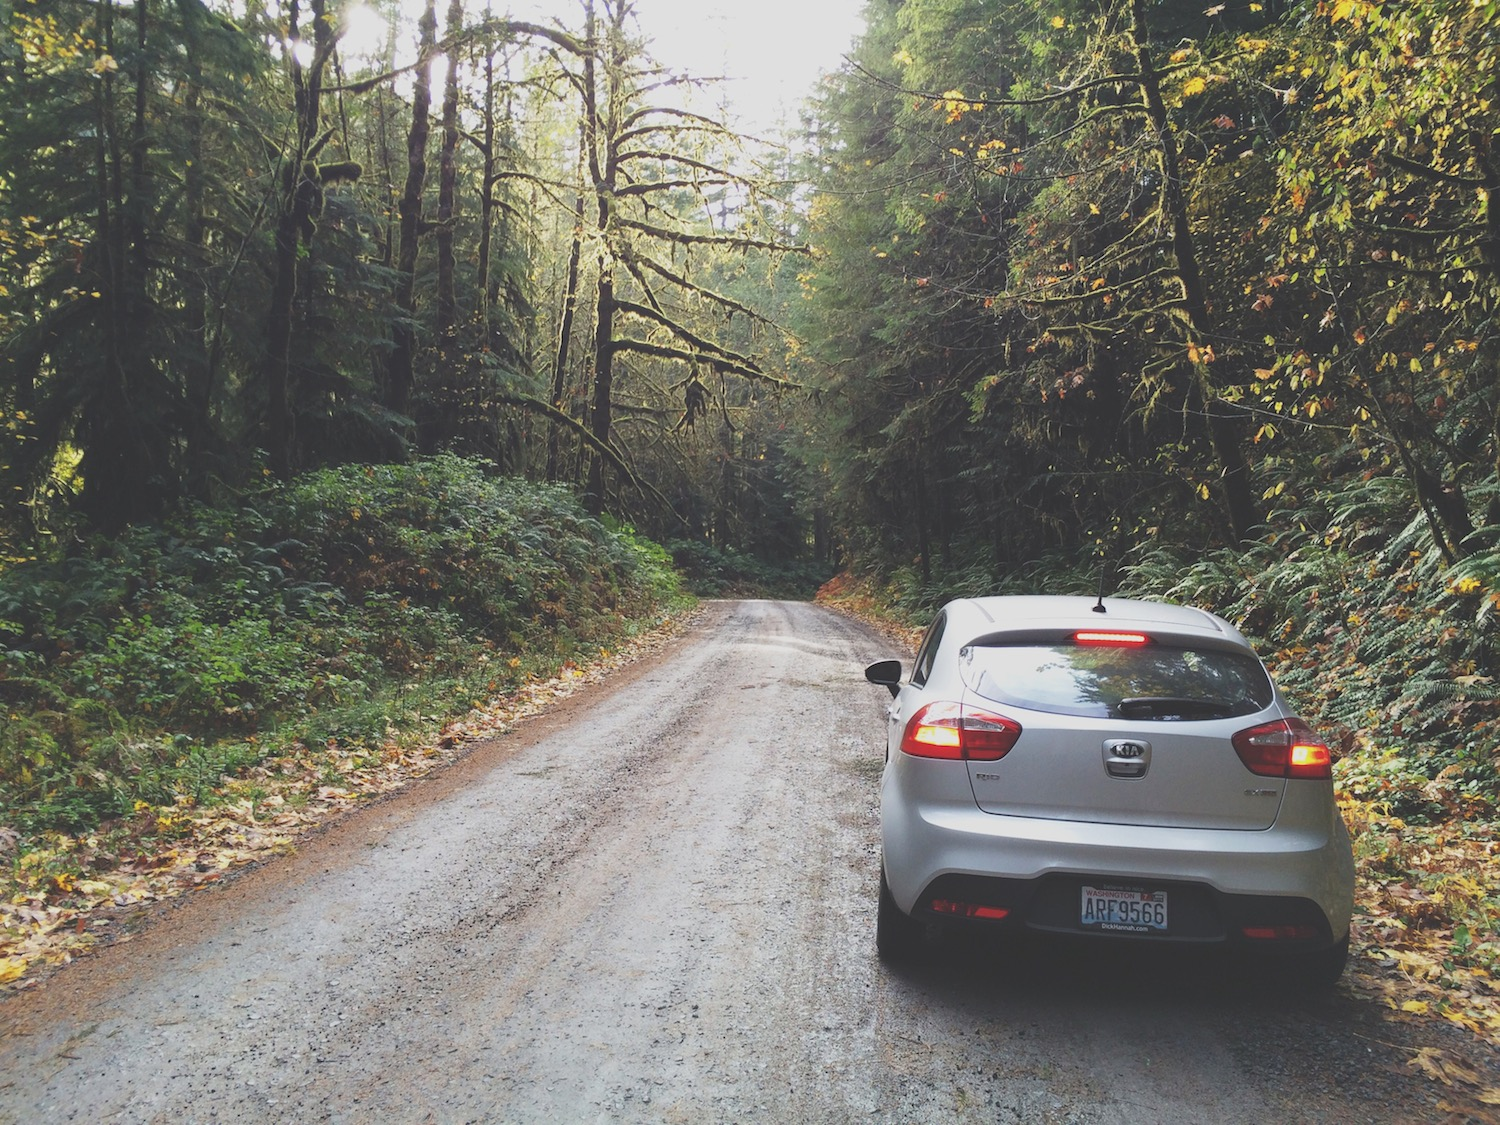 Jaz, Buck, Marsh, and I tried going to Bagby Hot Springs, OR, but found ourselves instead lost on a long, treacherous logging road.